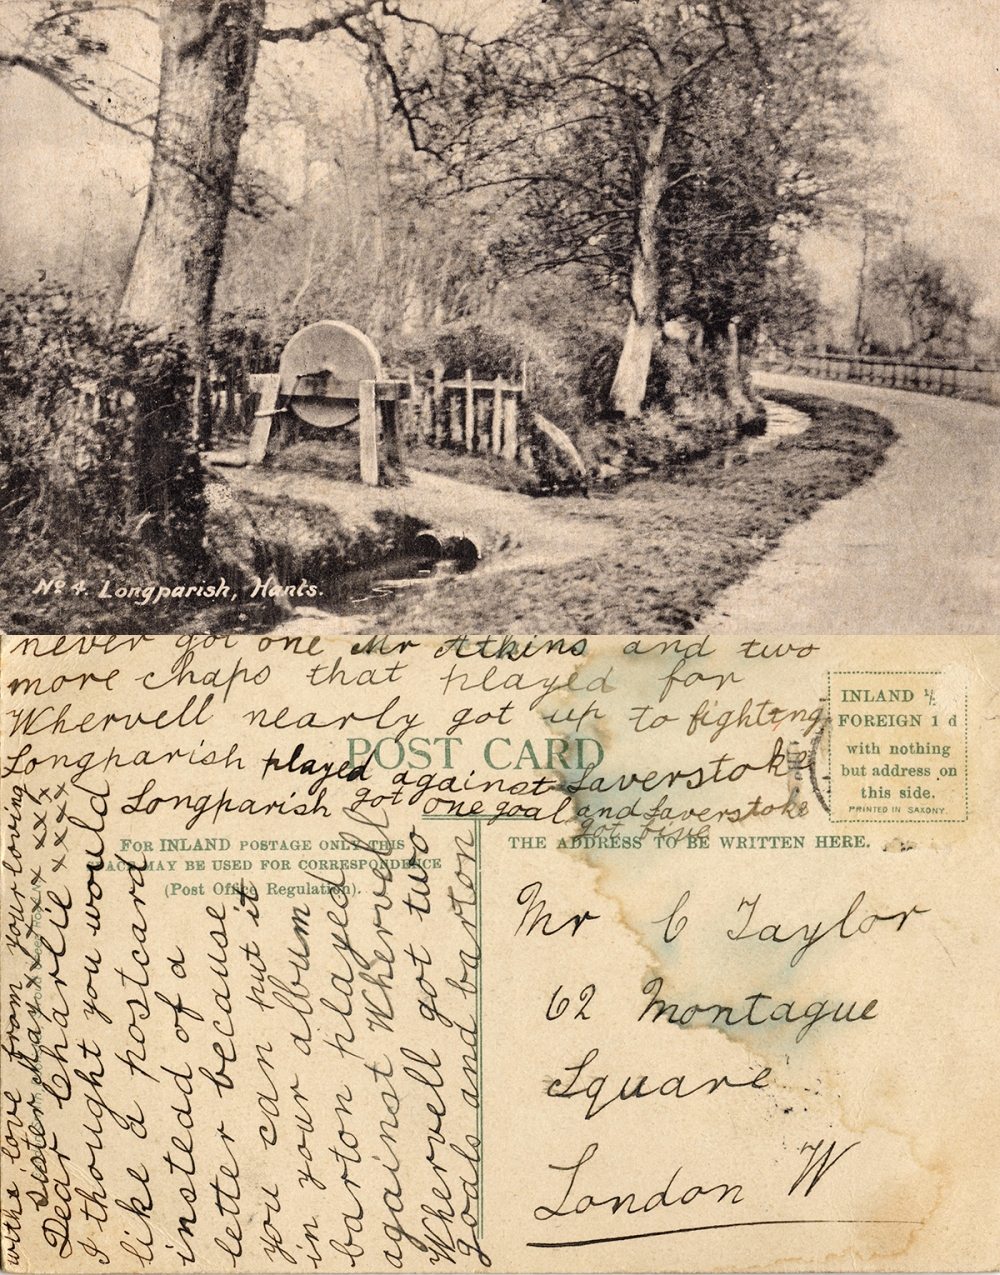 Longparish postcard